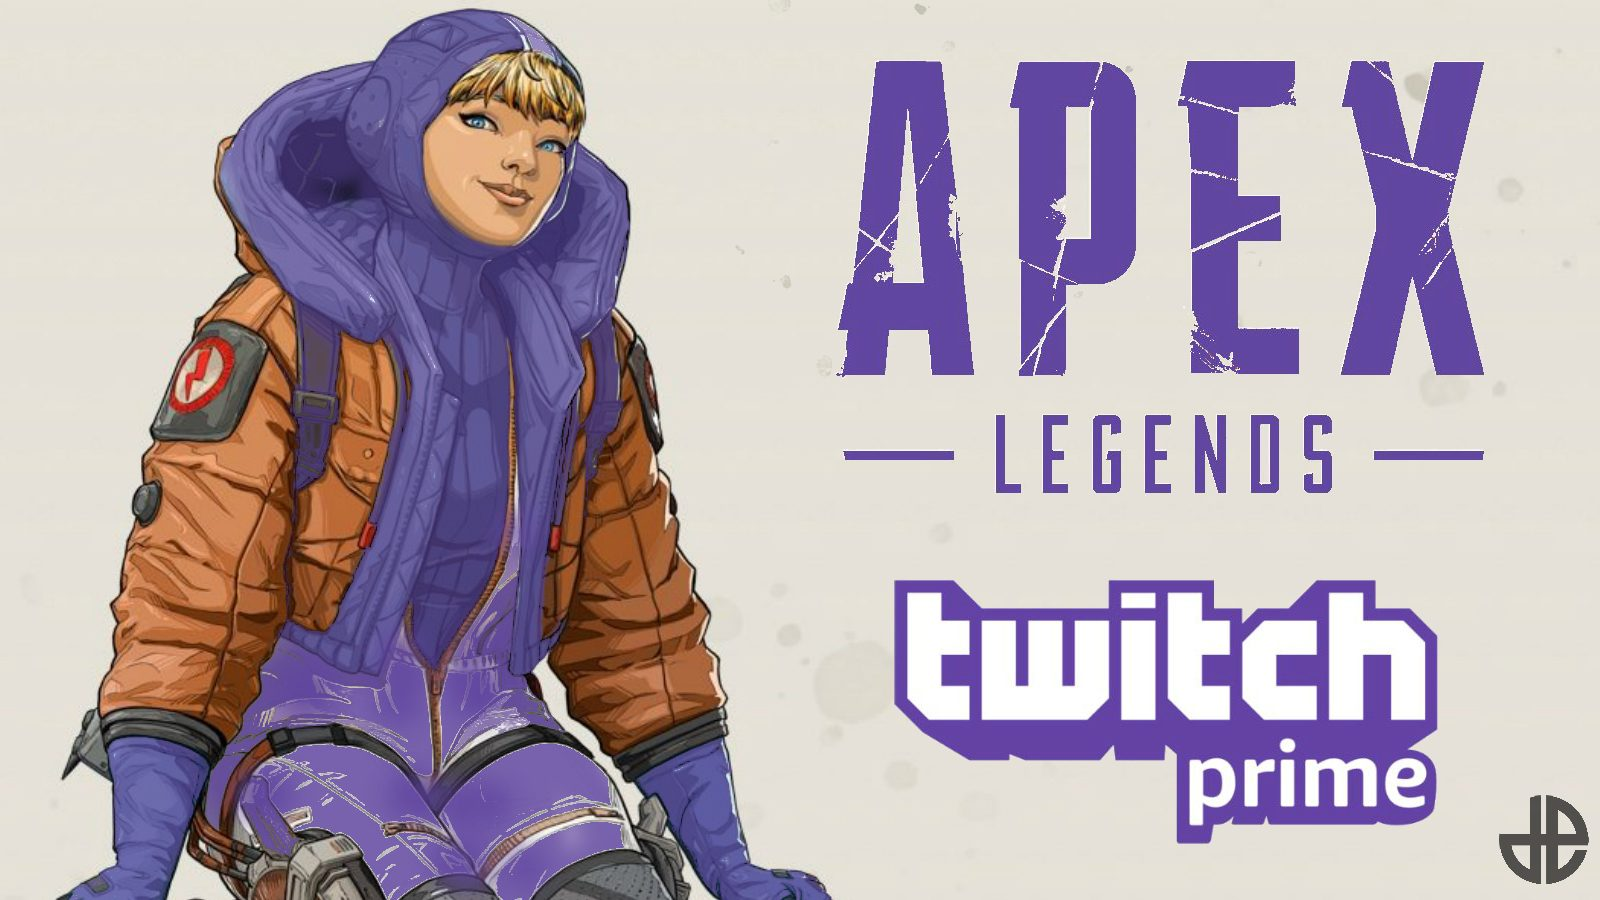 Twitch Prime Account World of Tanks Foxtrot / Apex